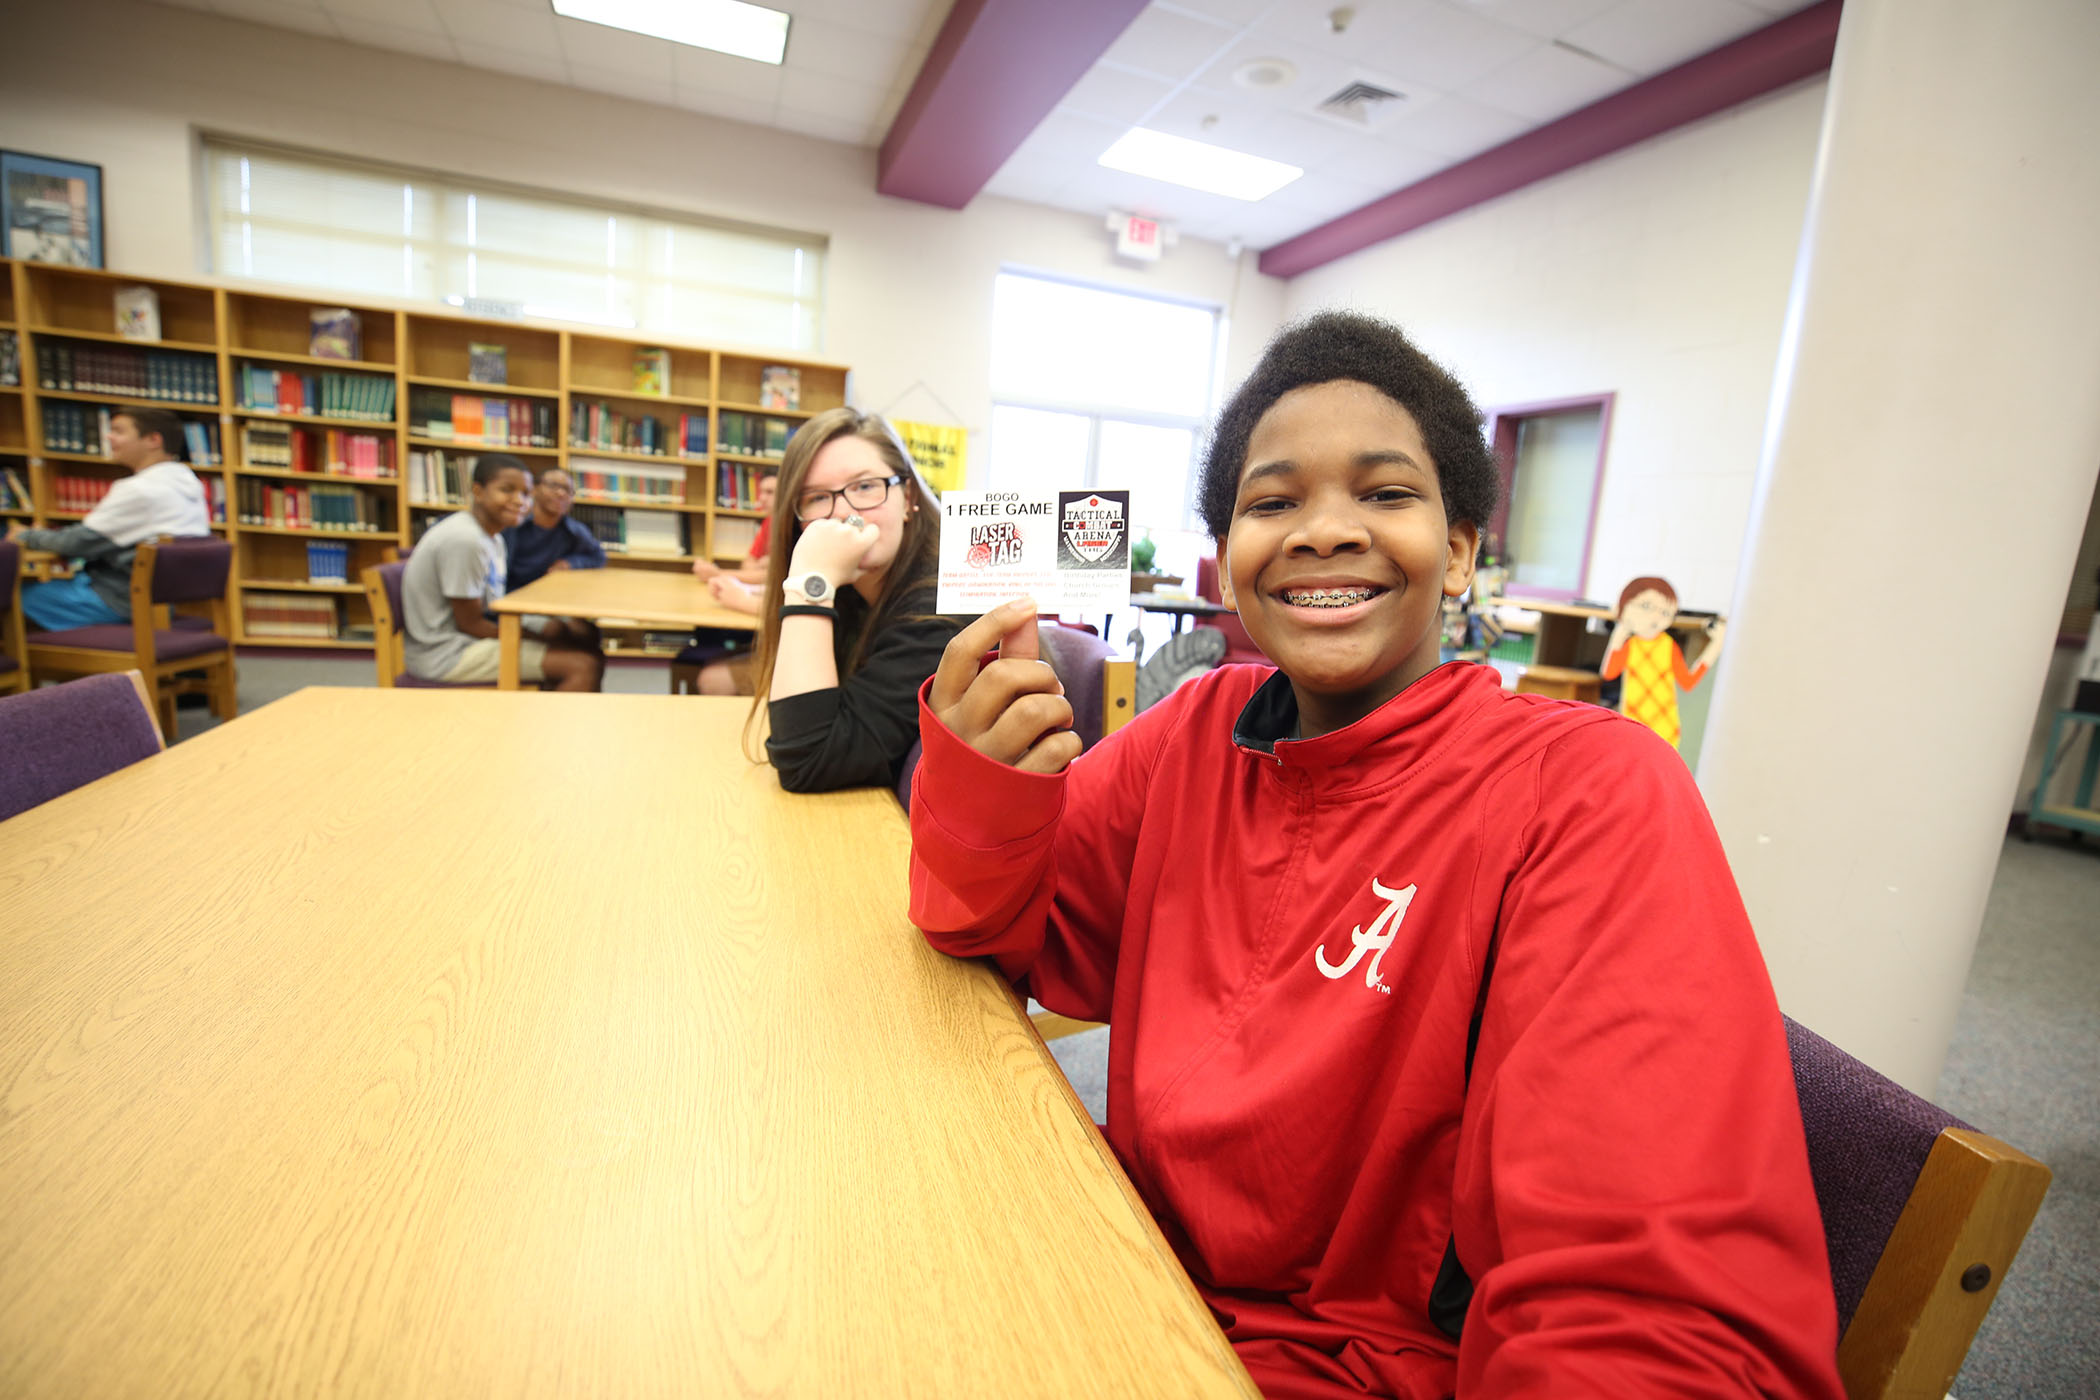 QJH student holds up a free laser tag card.